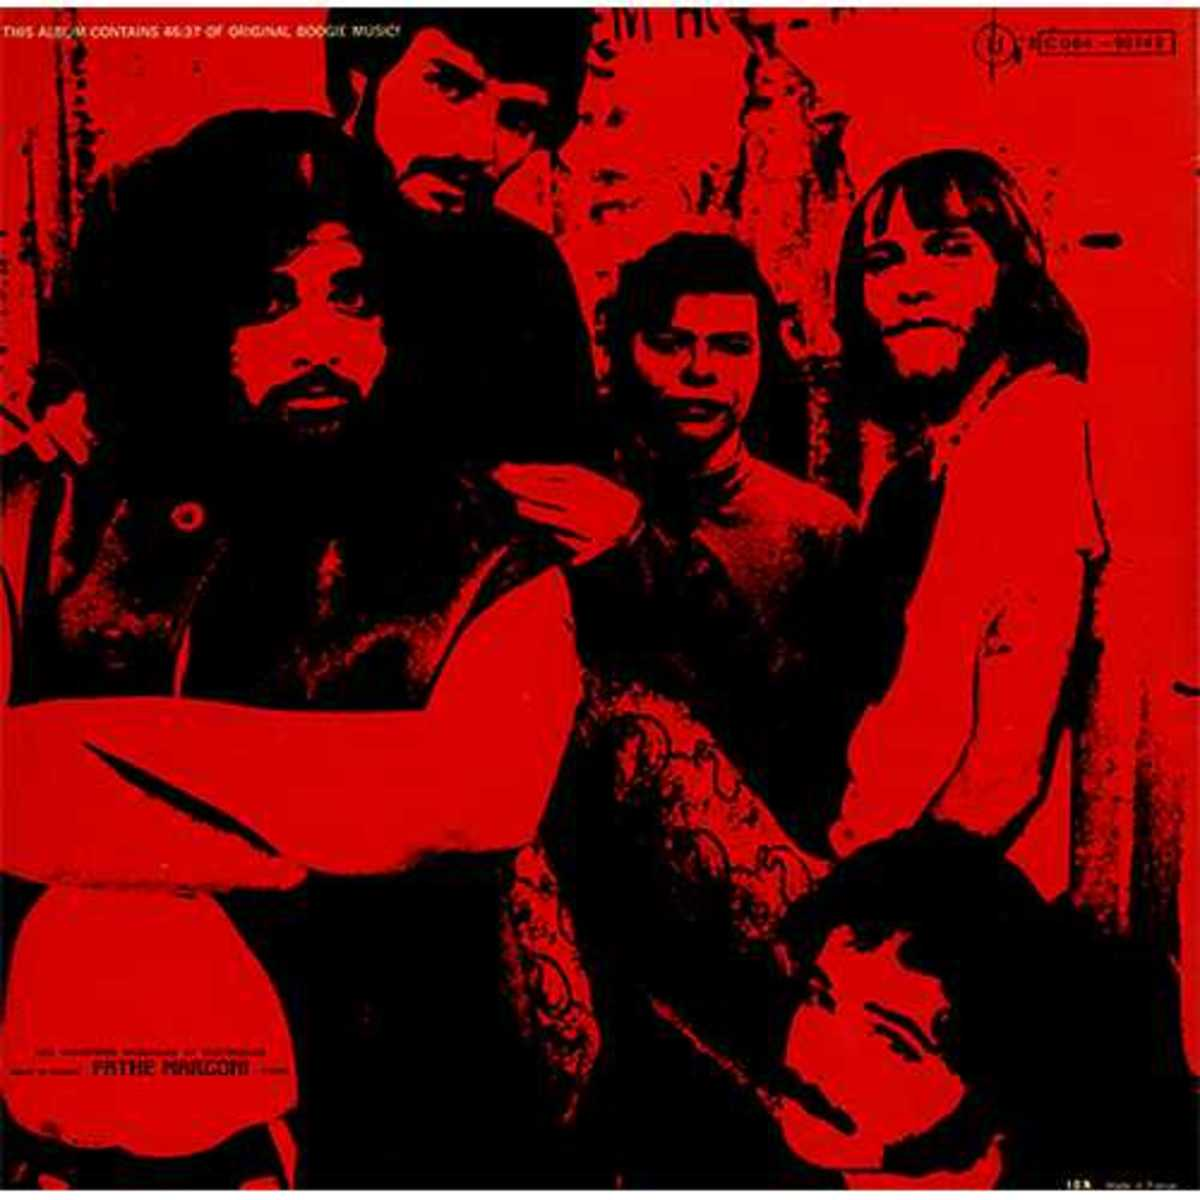 """Canned Heat """"Live at Topanga Corral"""" Wand Records WDS 693 (1970) Back Cover  -- Bob Hite, Alan Wilson"""